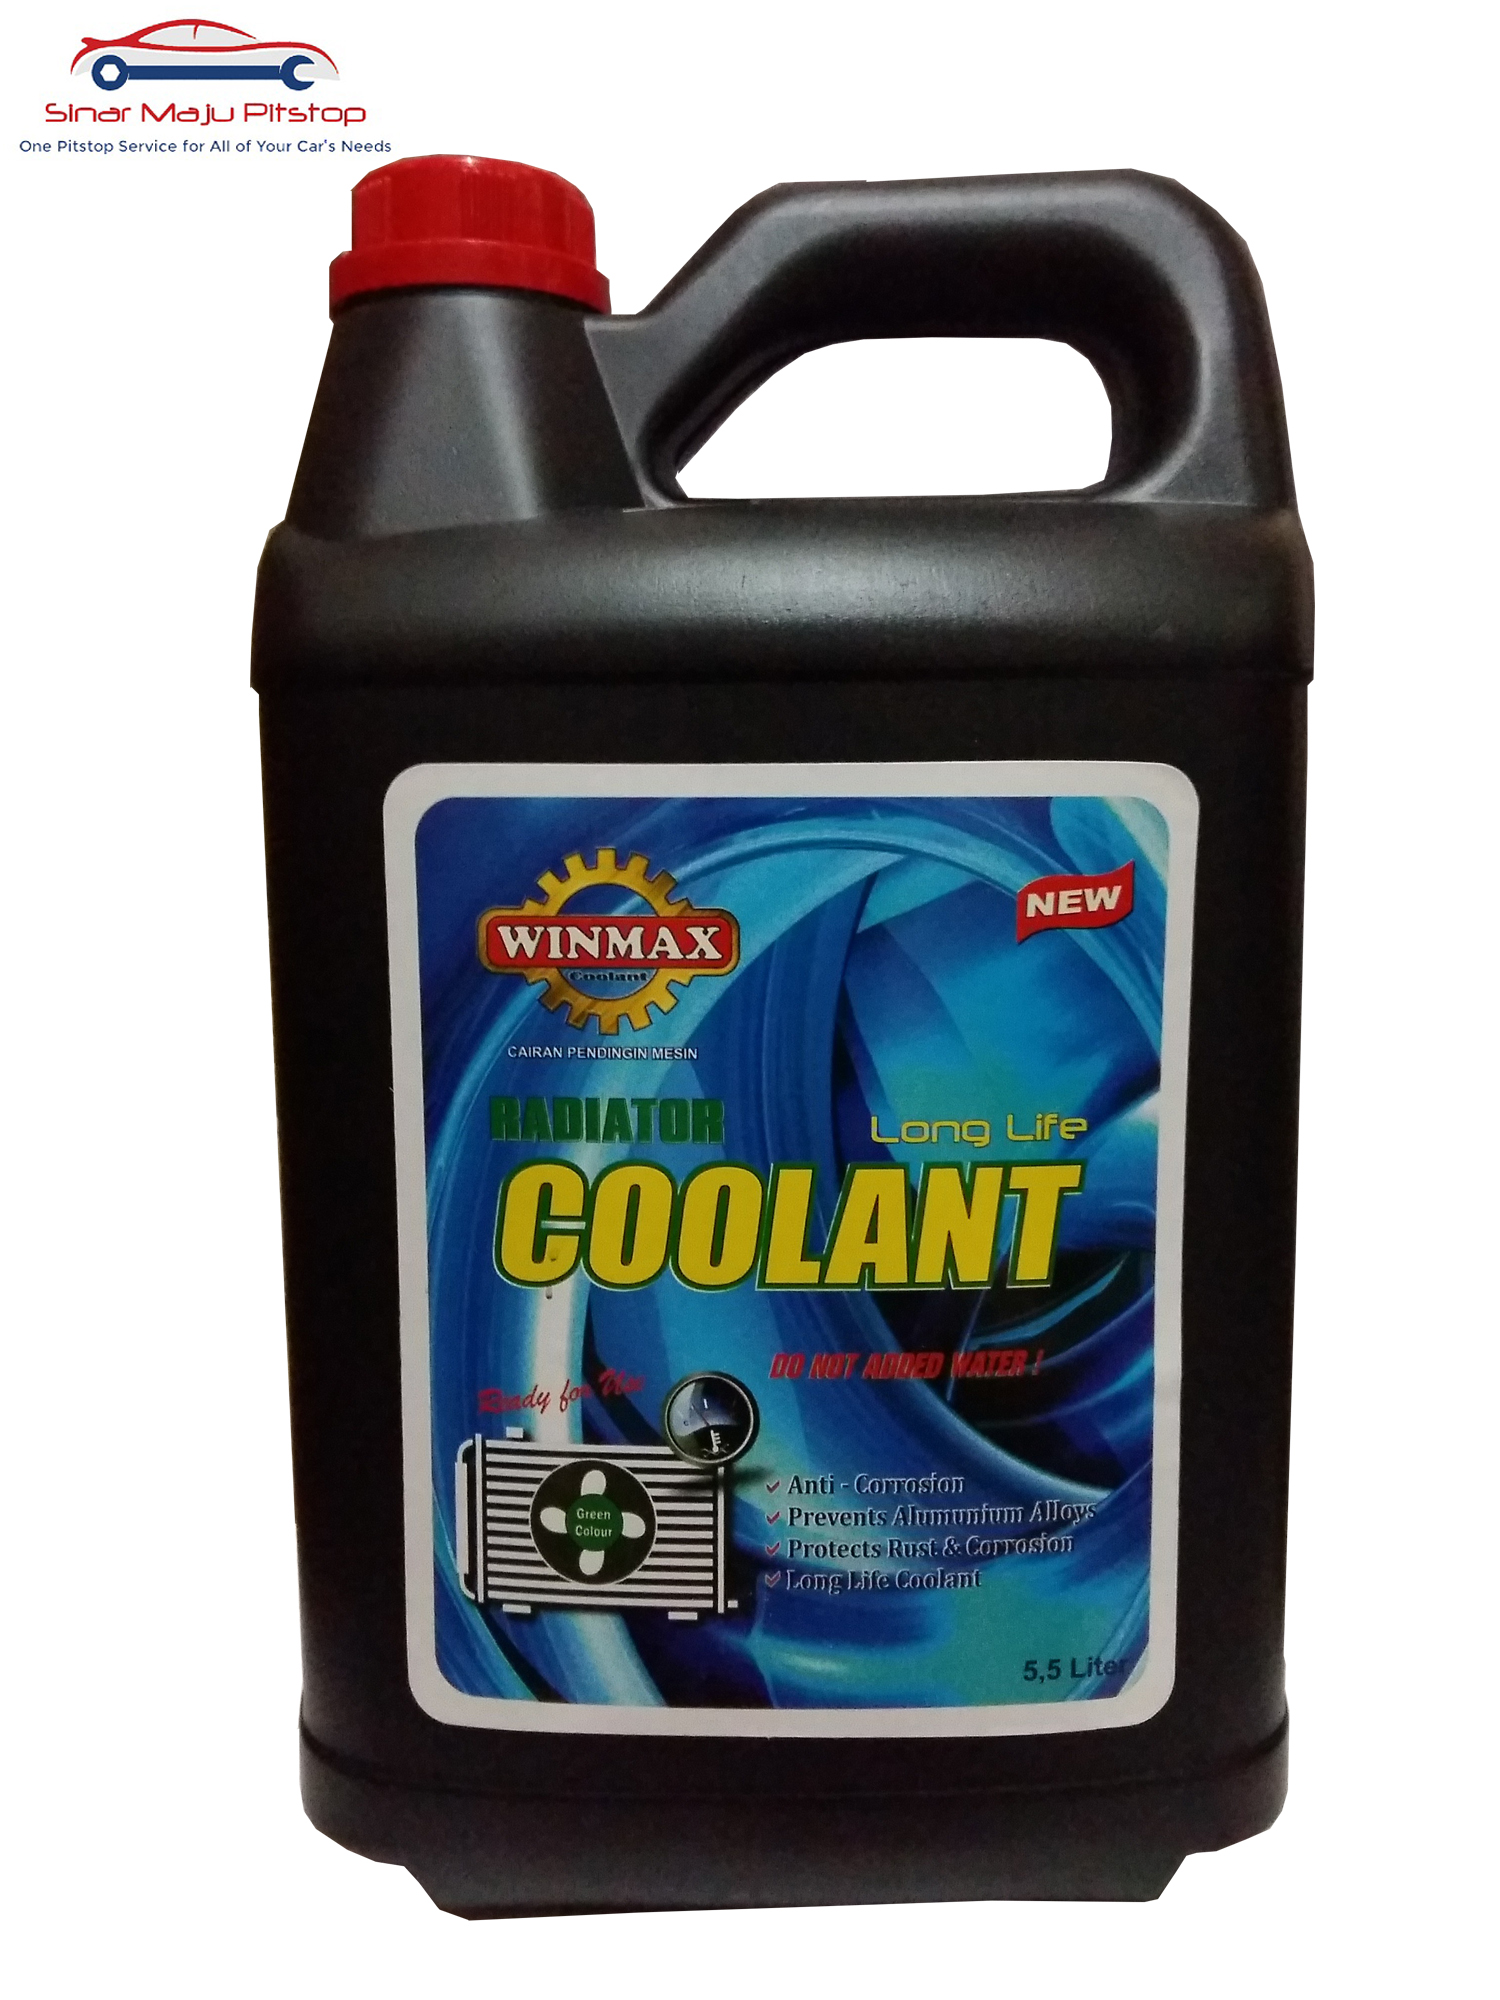 Rexco Multi Purpose Lubricant 220 Ml Cairan Serbaguna Sejenis Wd 40 Use Product 412 Made In Usa Source Winmax Radiator Coolant Air